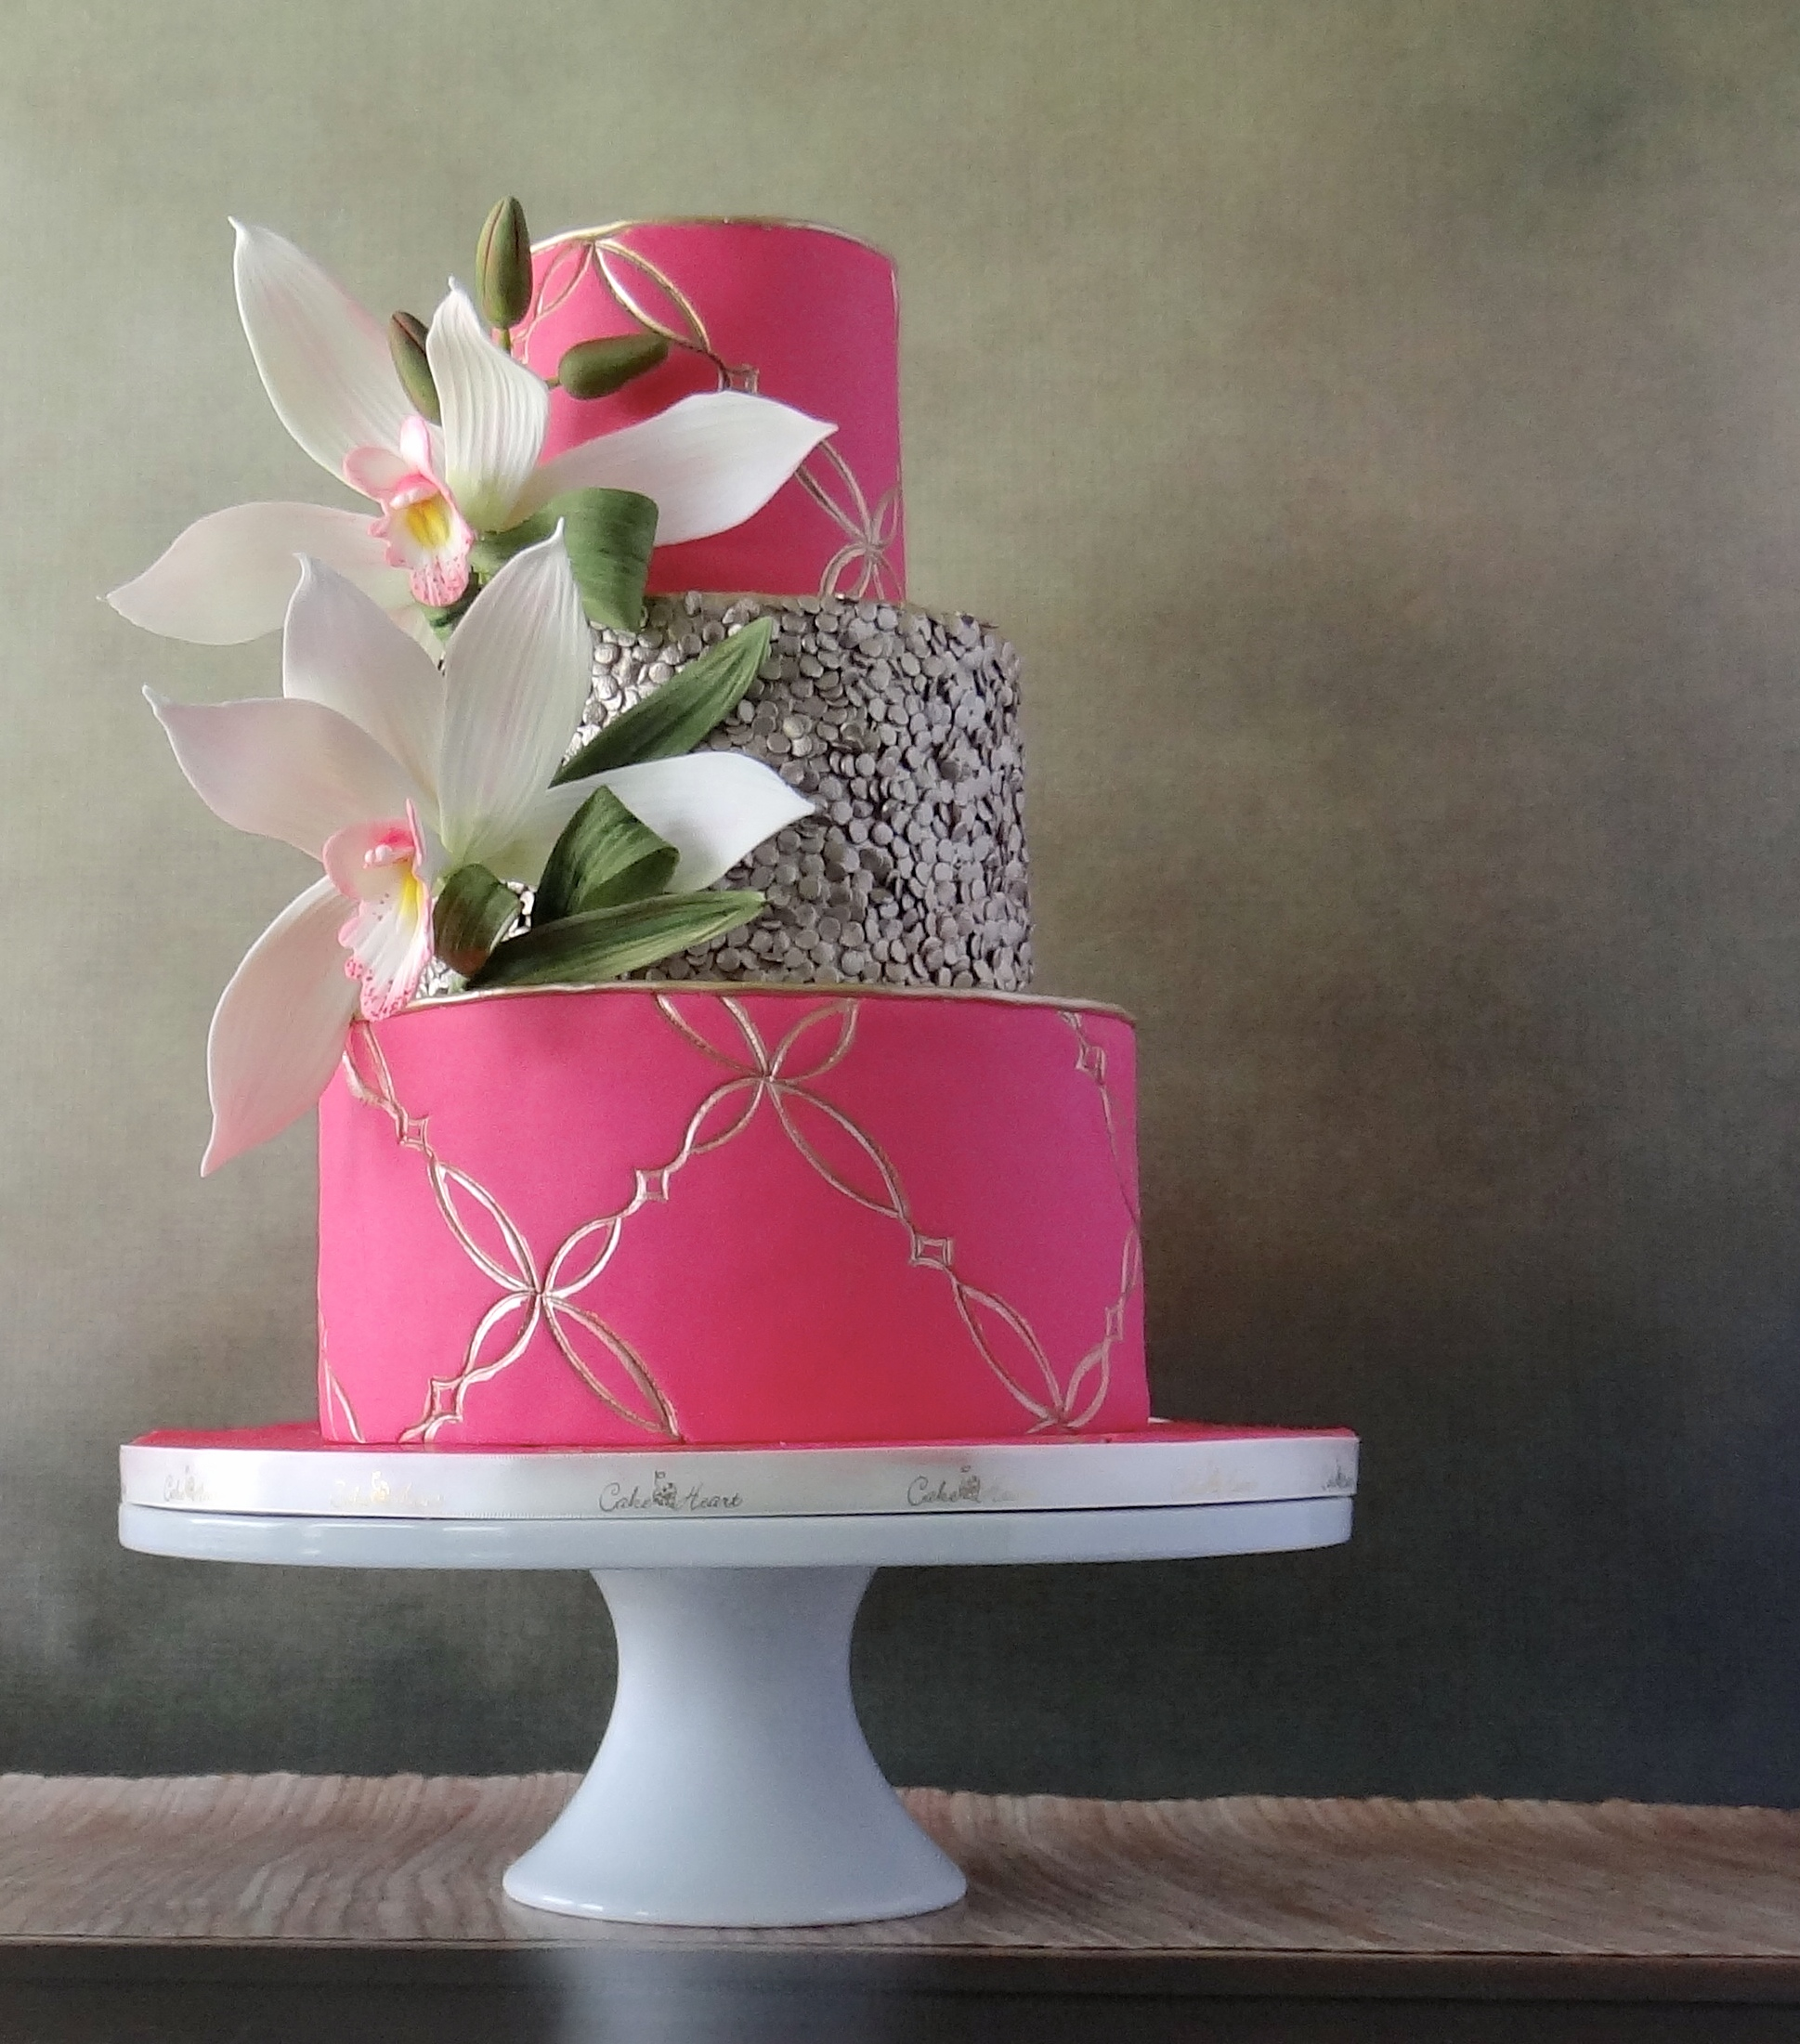 All pink fondant wedding cake with silver details